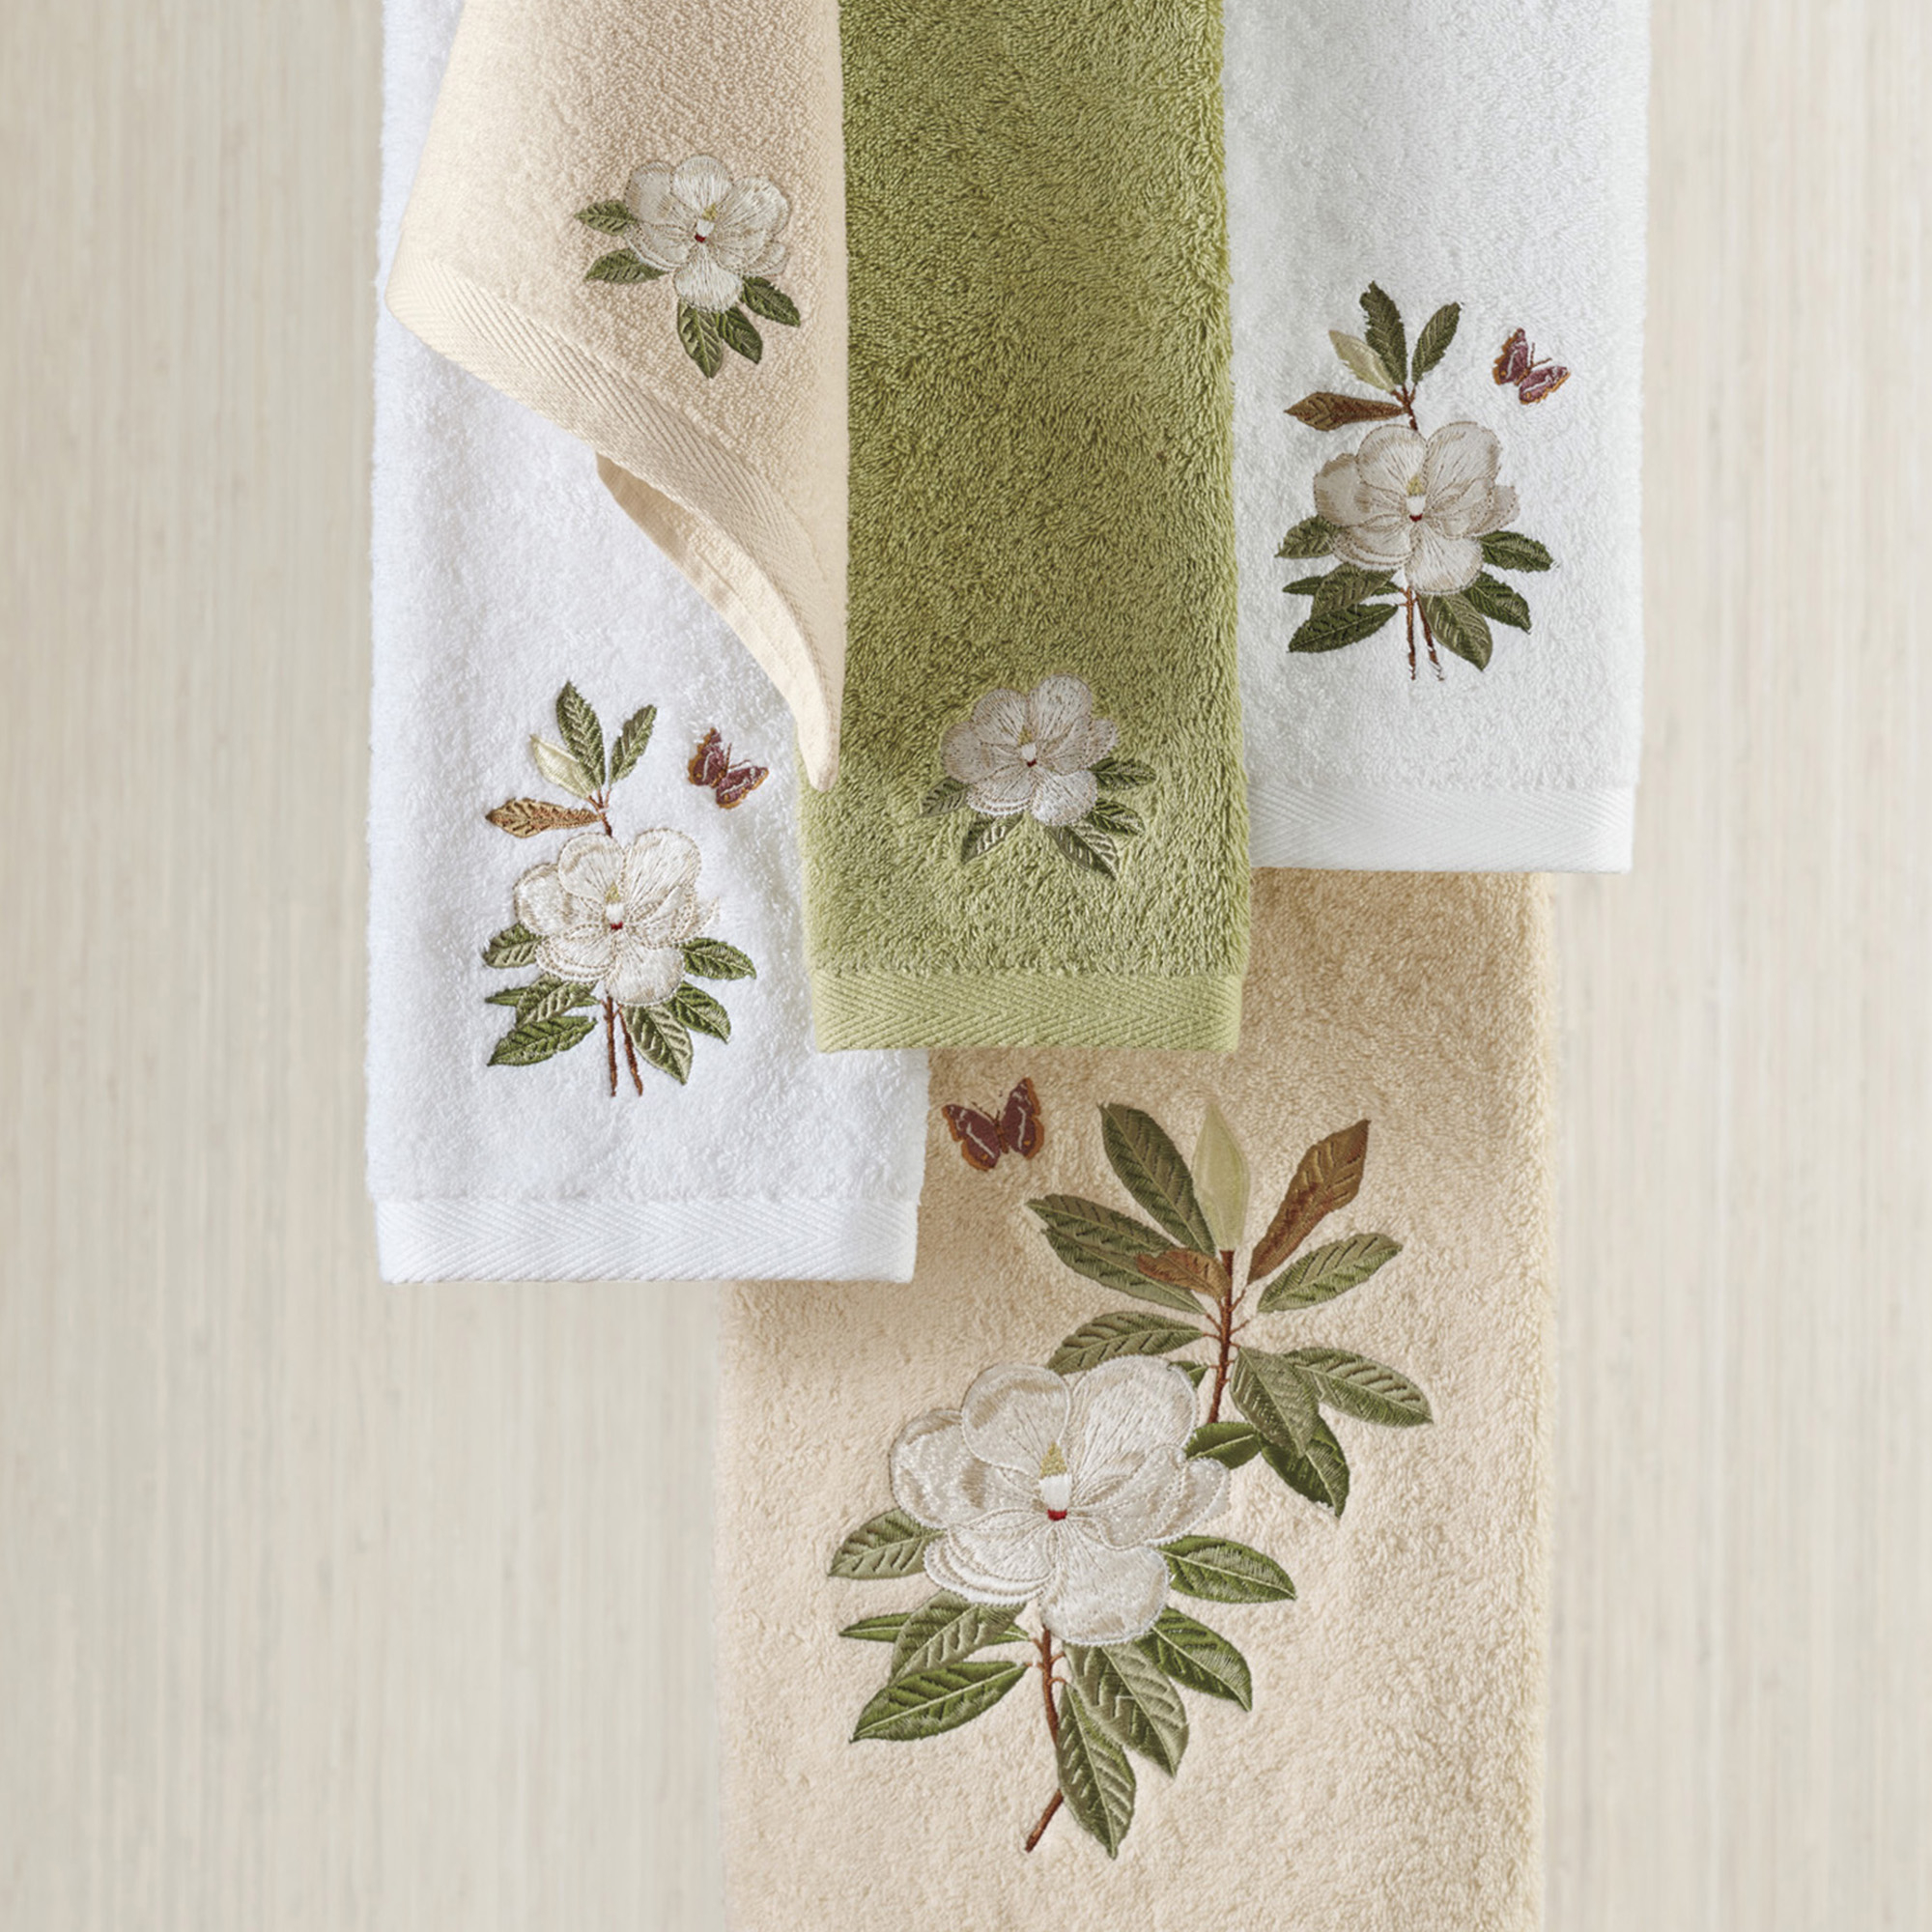 Magnolia Towels